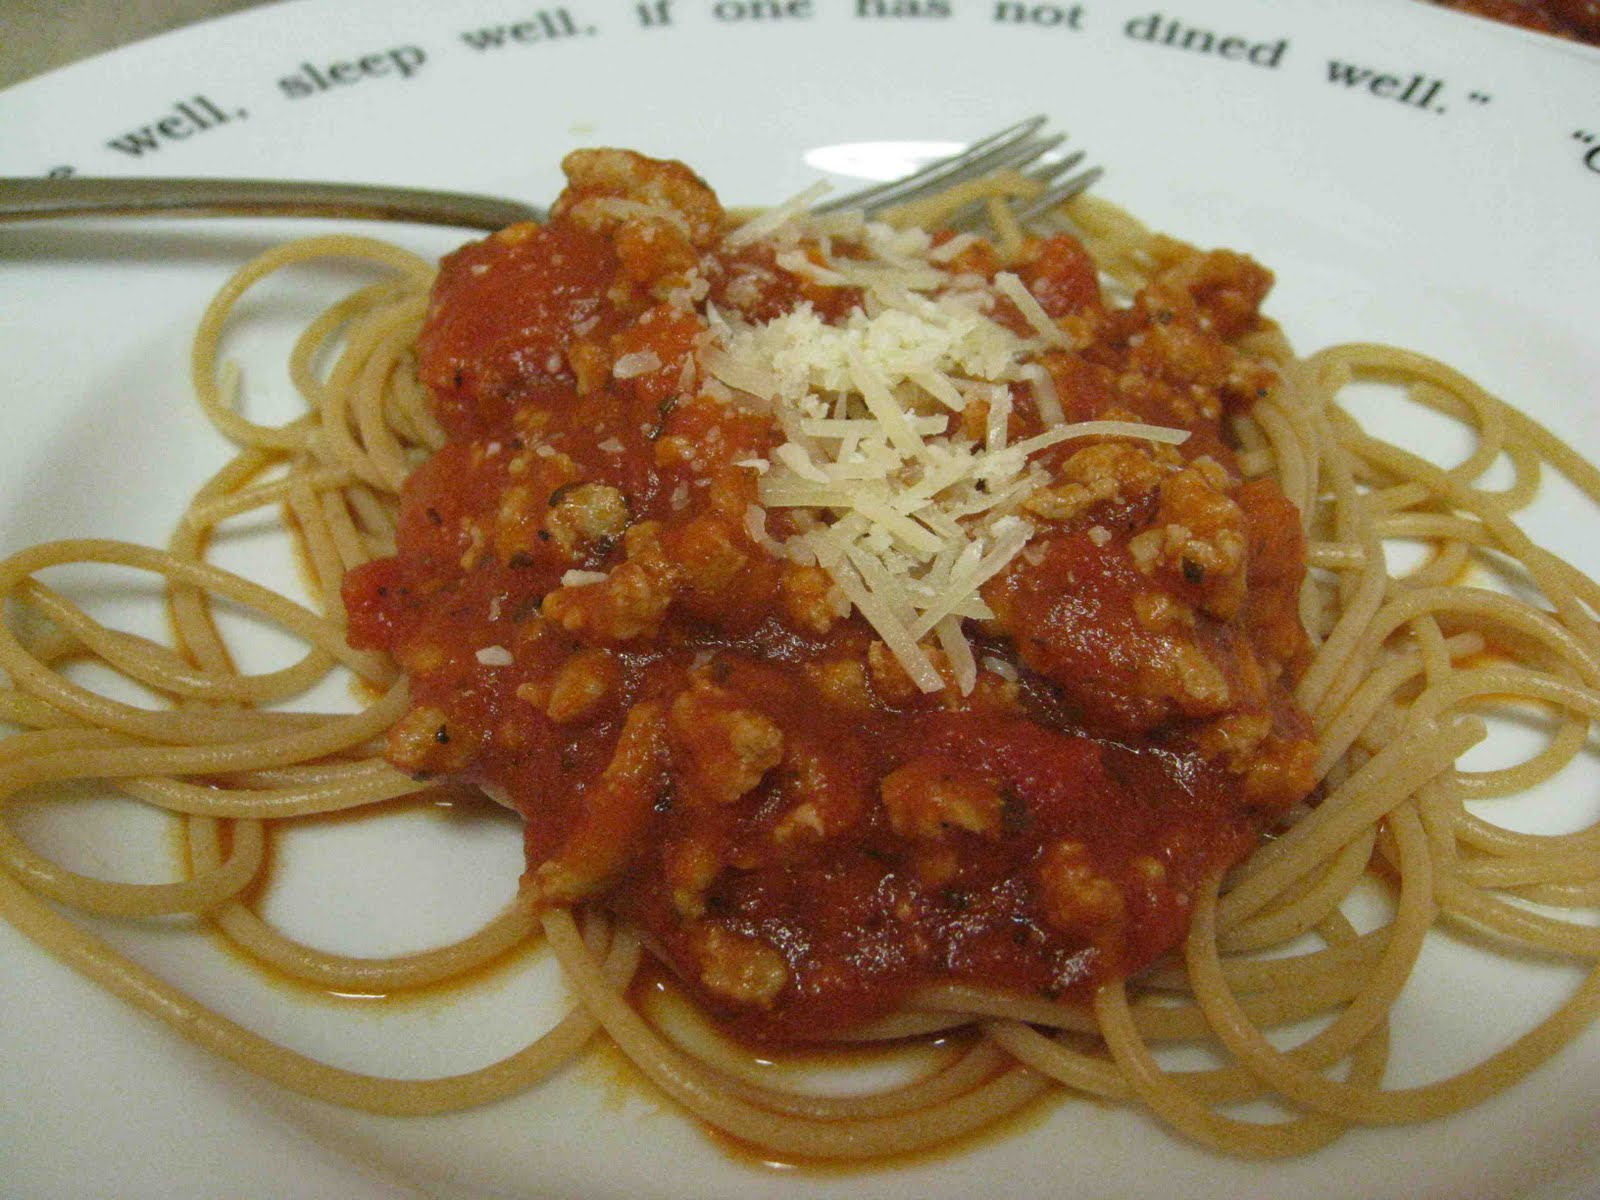 The Colorado Desert: Spaghetti with Meat Sauce